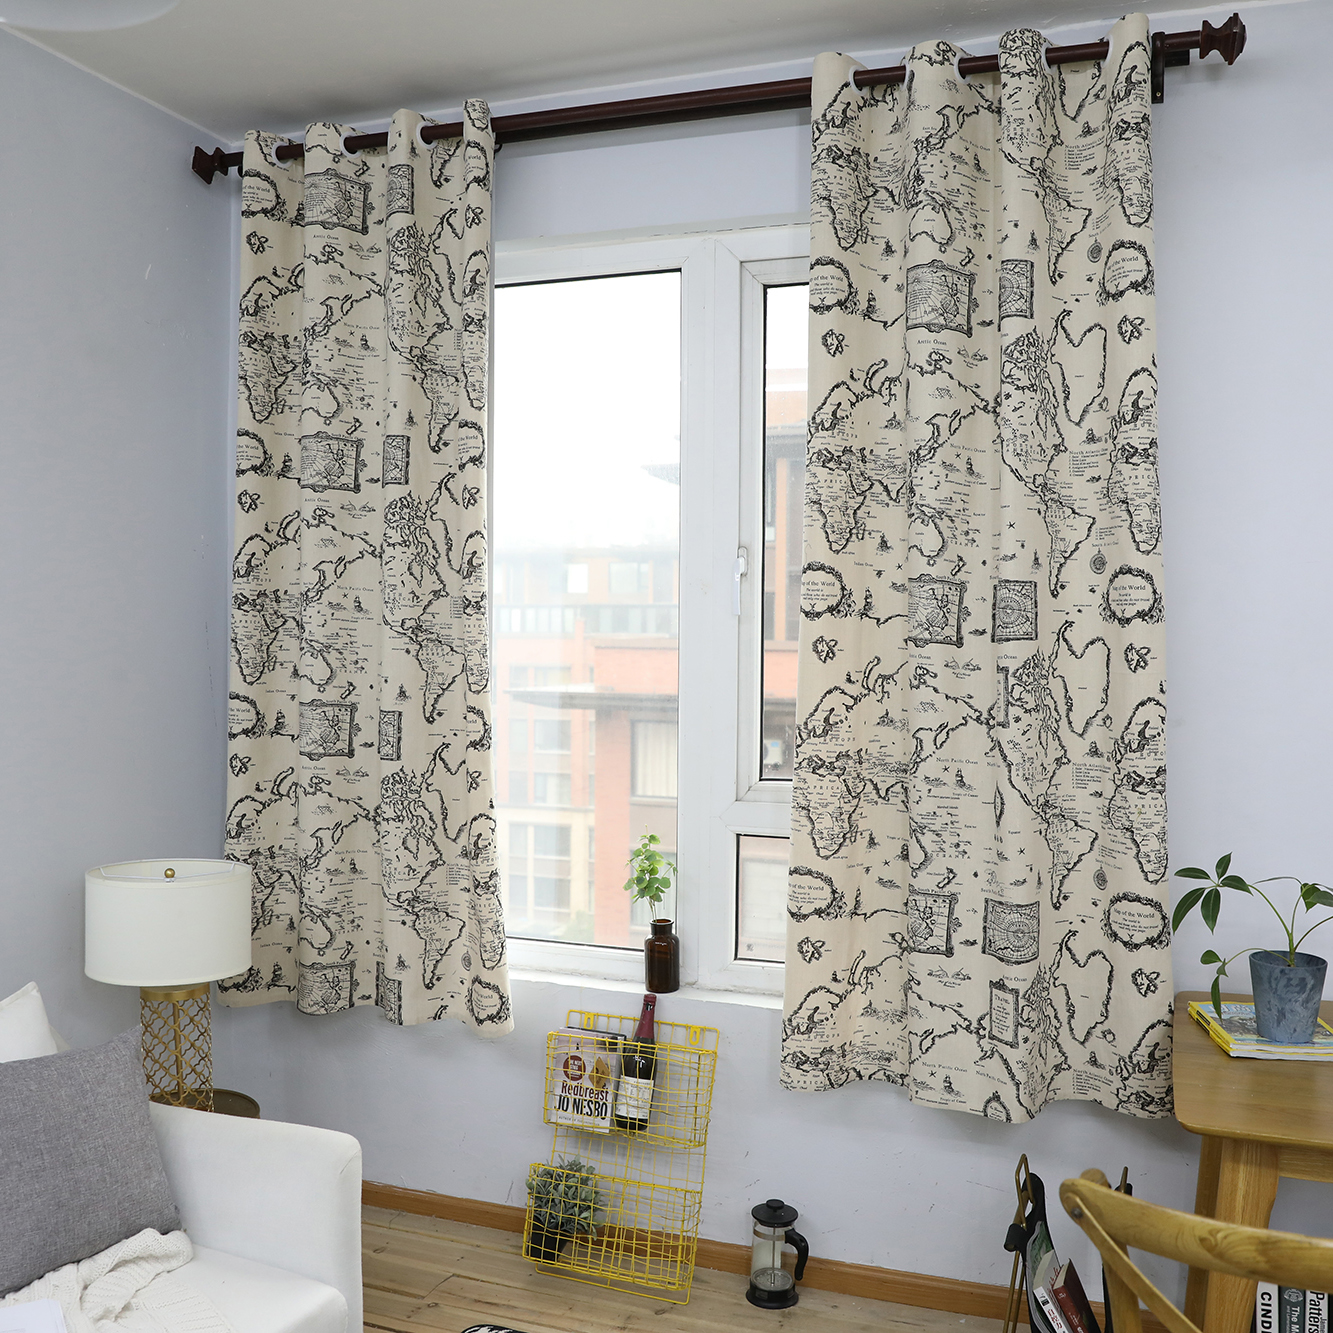 "55*85"" Cotton Map Black Printed Curtain Top Window Curtains Drapes for Bedroom Panel Pair"